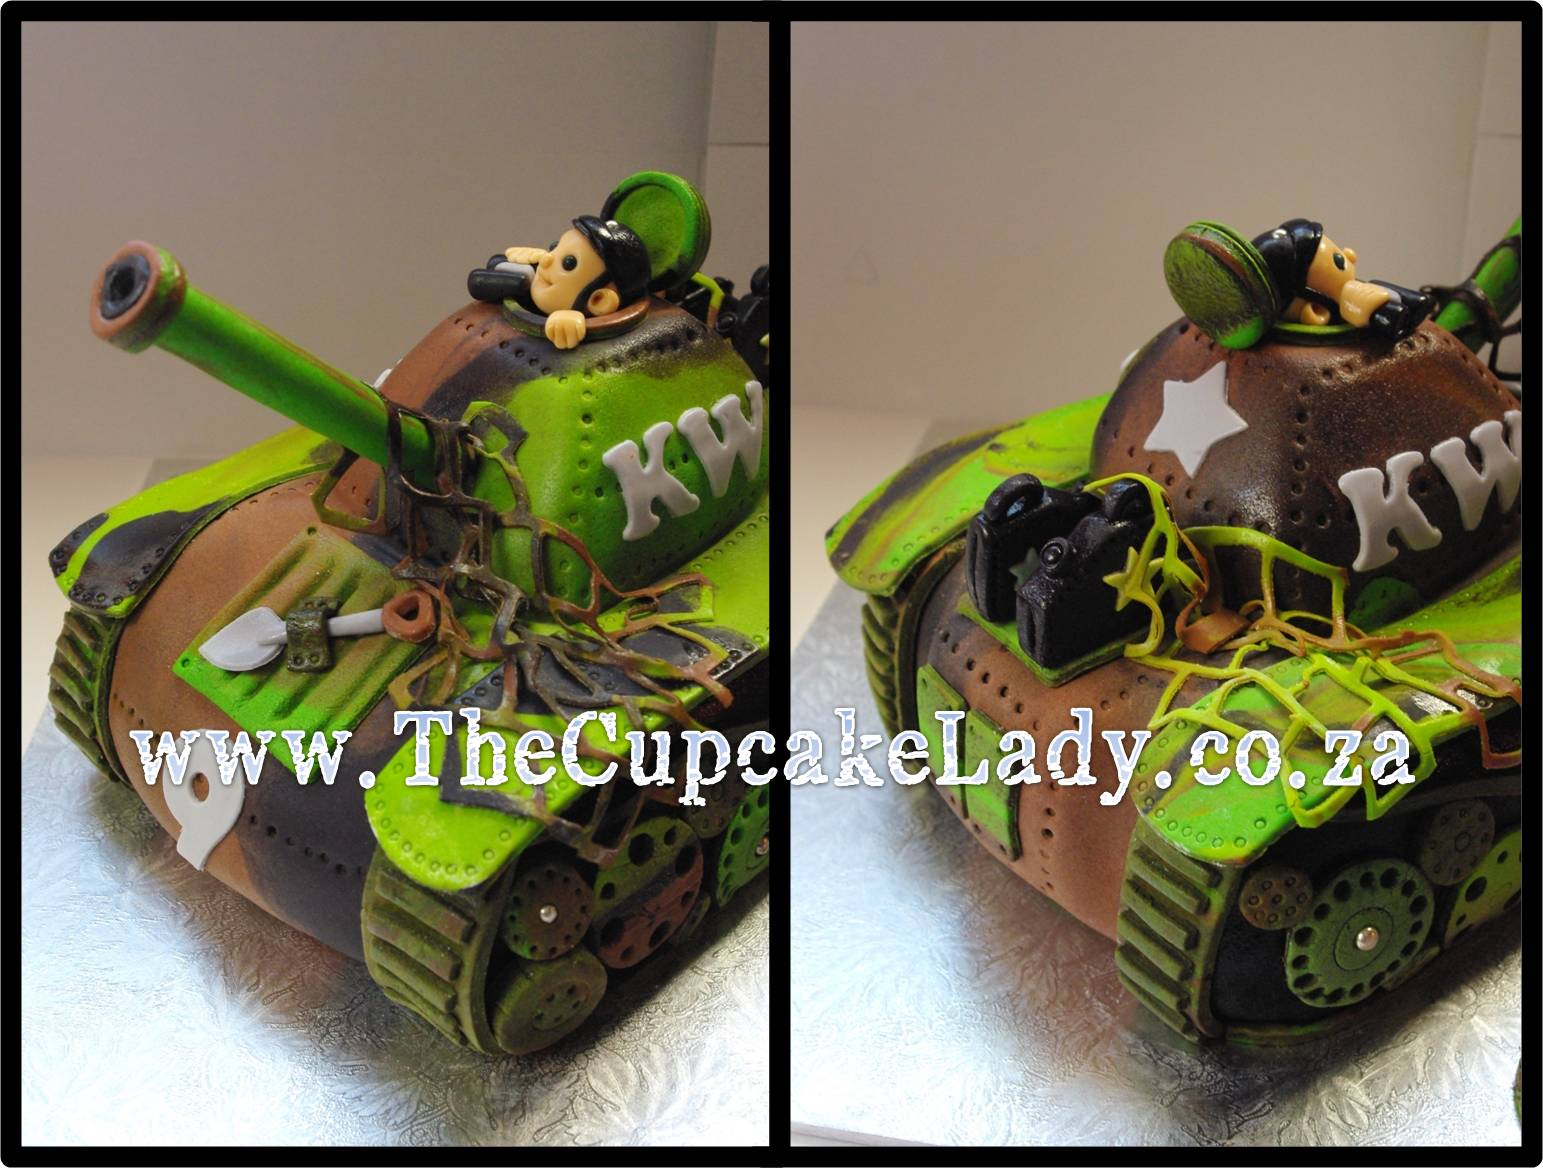 army theme, tank-shaped novelty cake, handmade sugarpaste decorations, camouflage